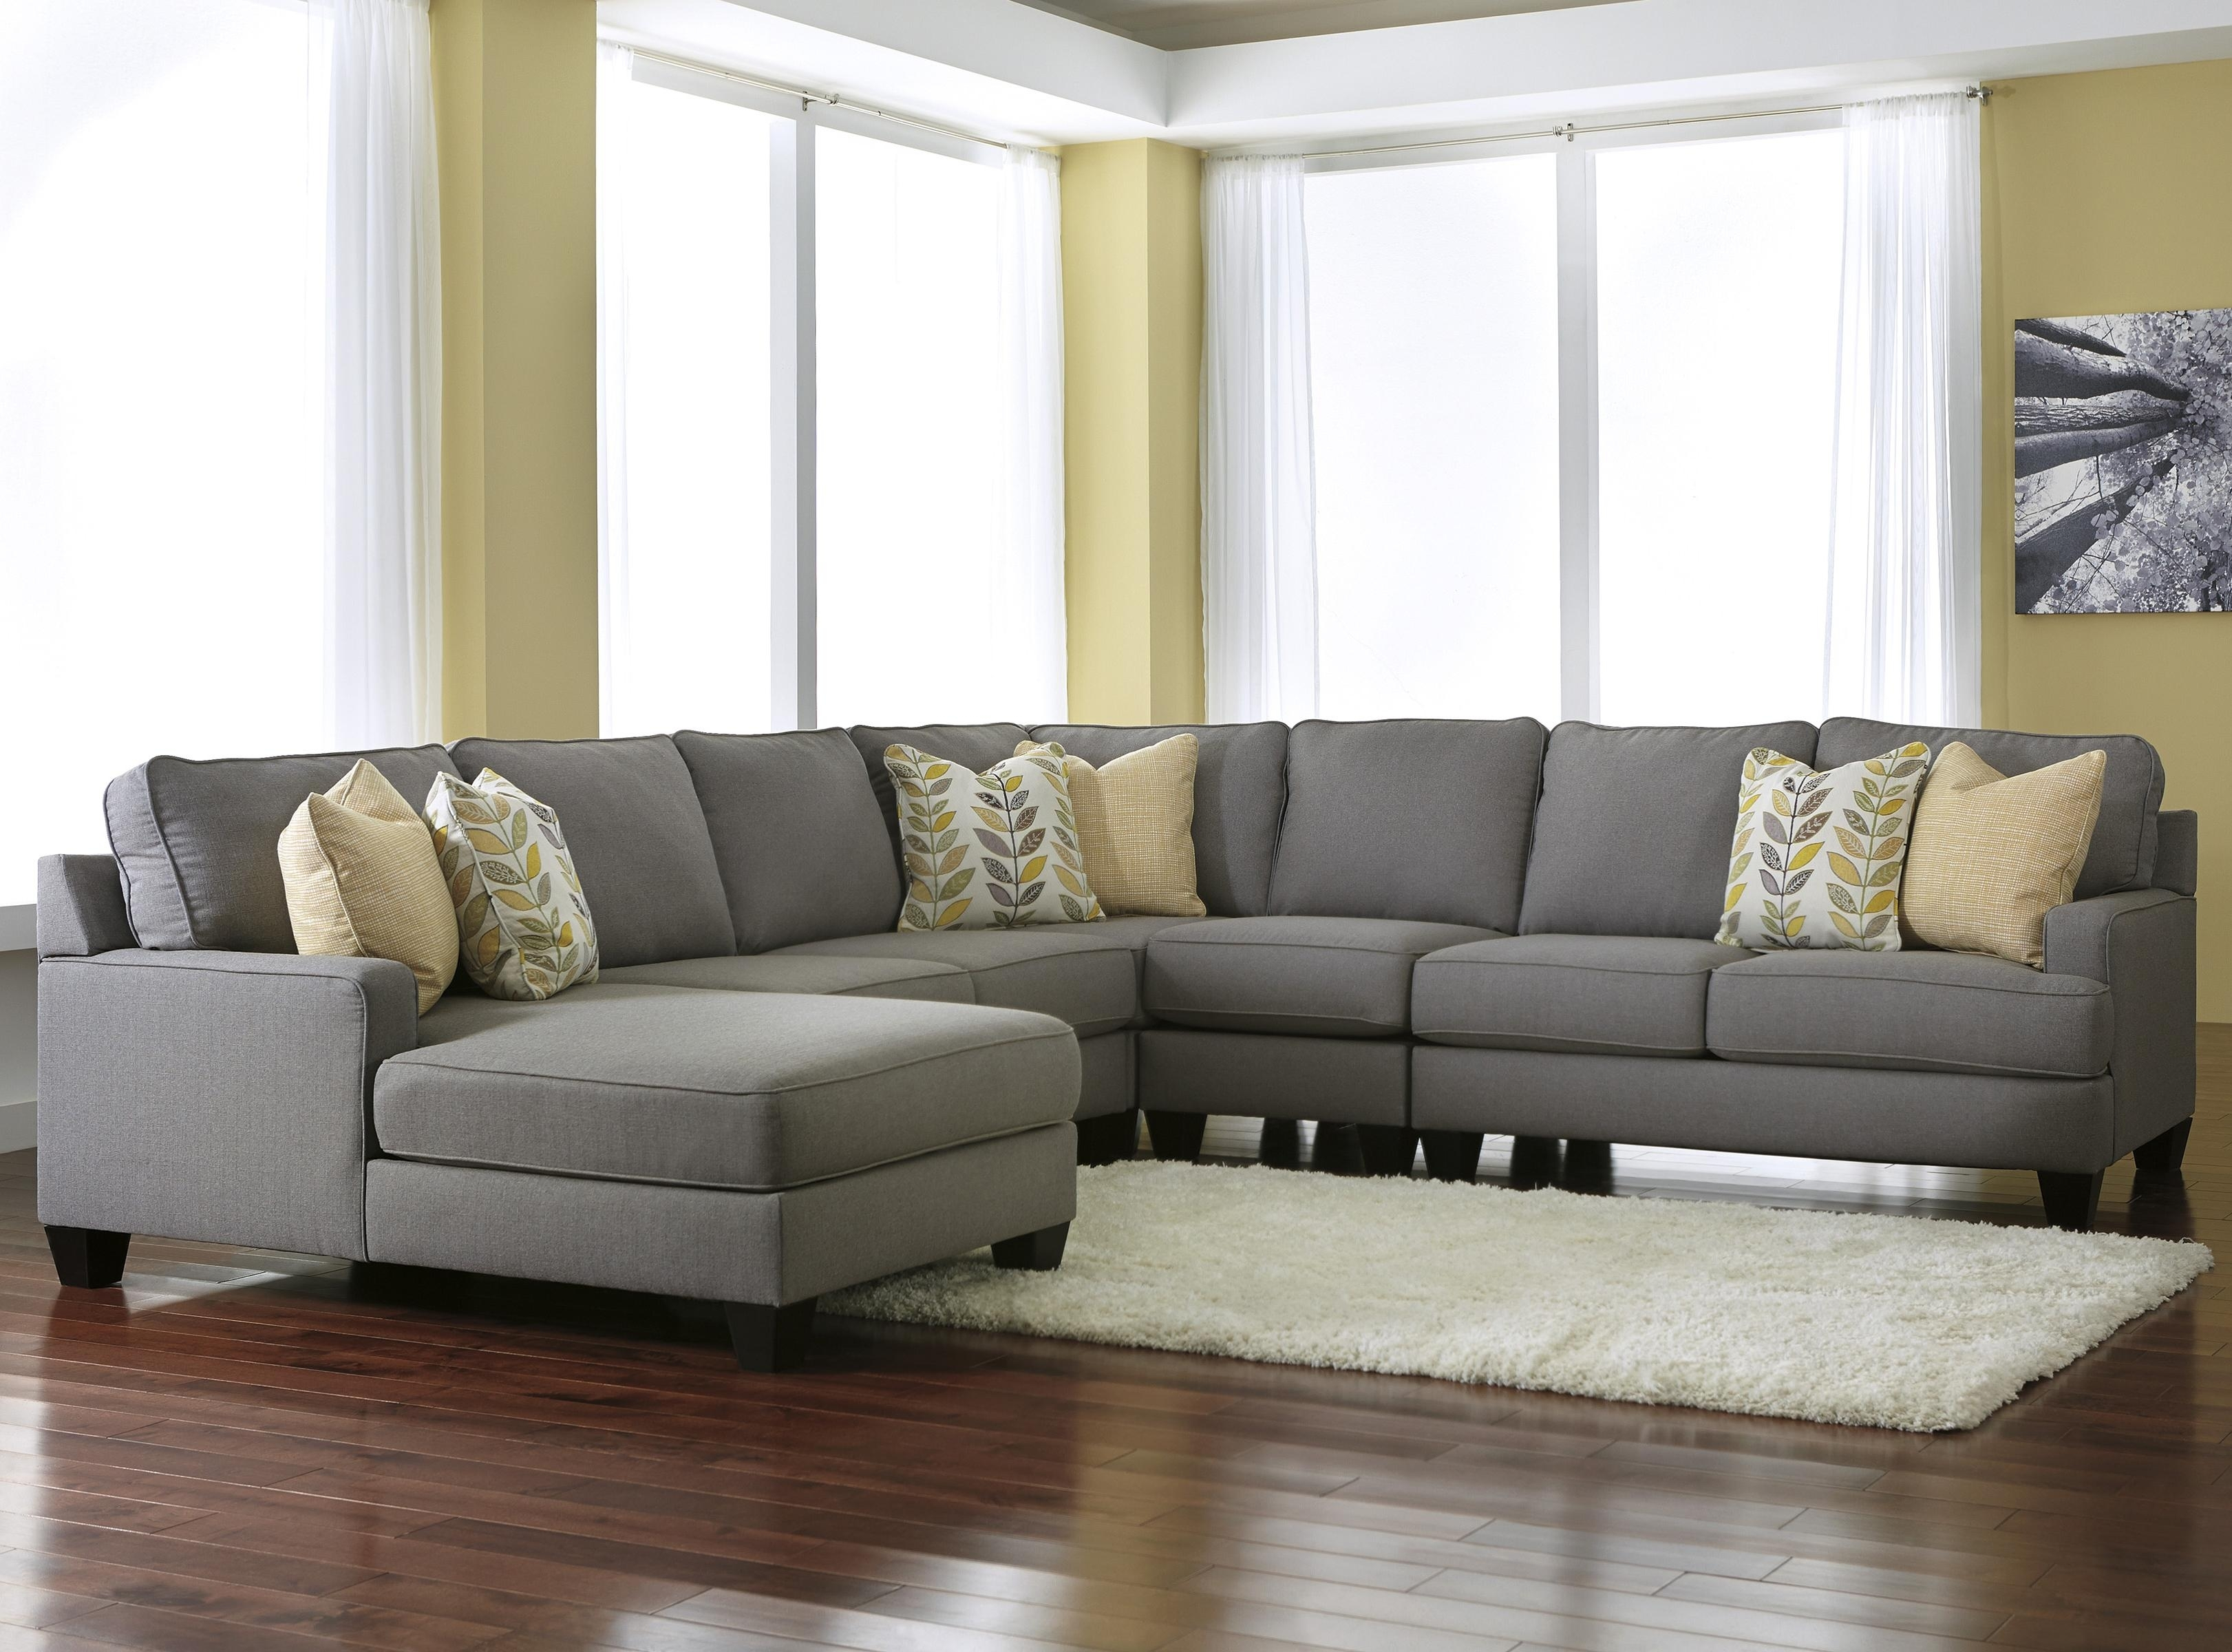 Modern 5 Piece Sectional Sofa With Left Chaise & Reversible Seat For Lancaster Pa Sectional Sofas (View 5 of 10)